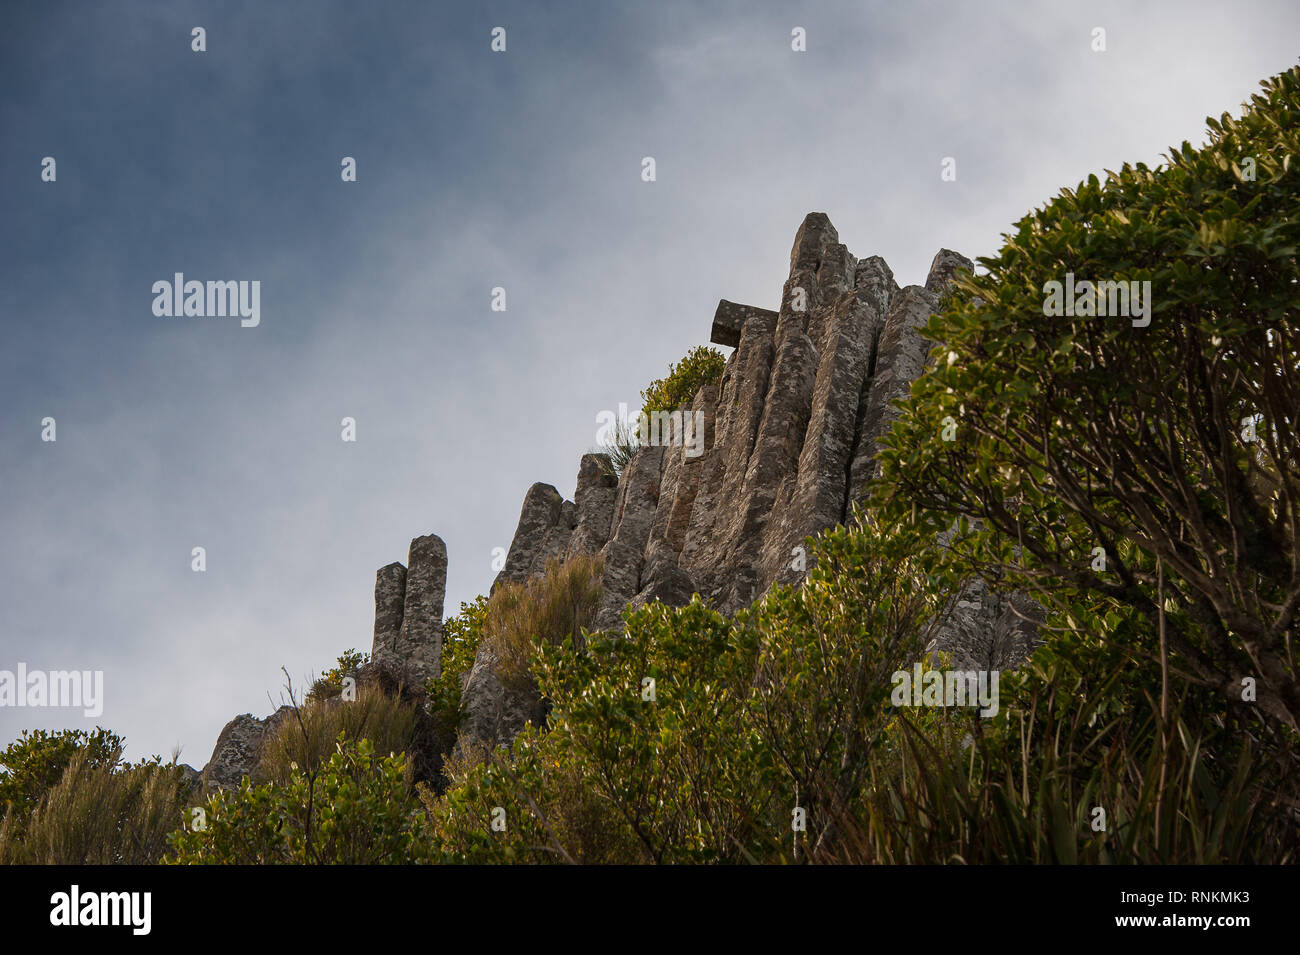 The Organ Pipes, unique basalt columns Mt Cargill, Dunedin, New Zealand. Vertical pillars of volcanic rock stand against a blue, cloudy sky background - Stock Image